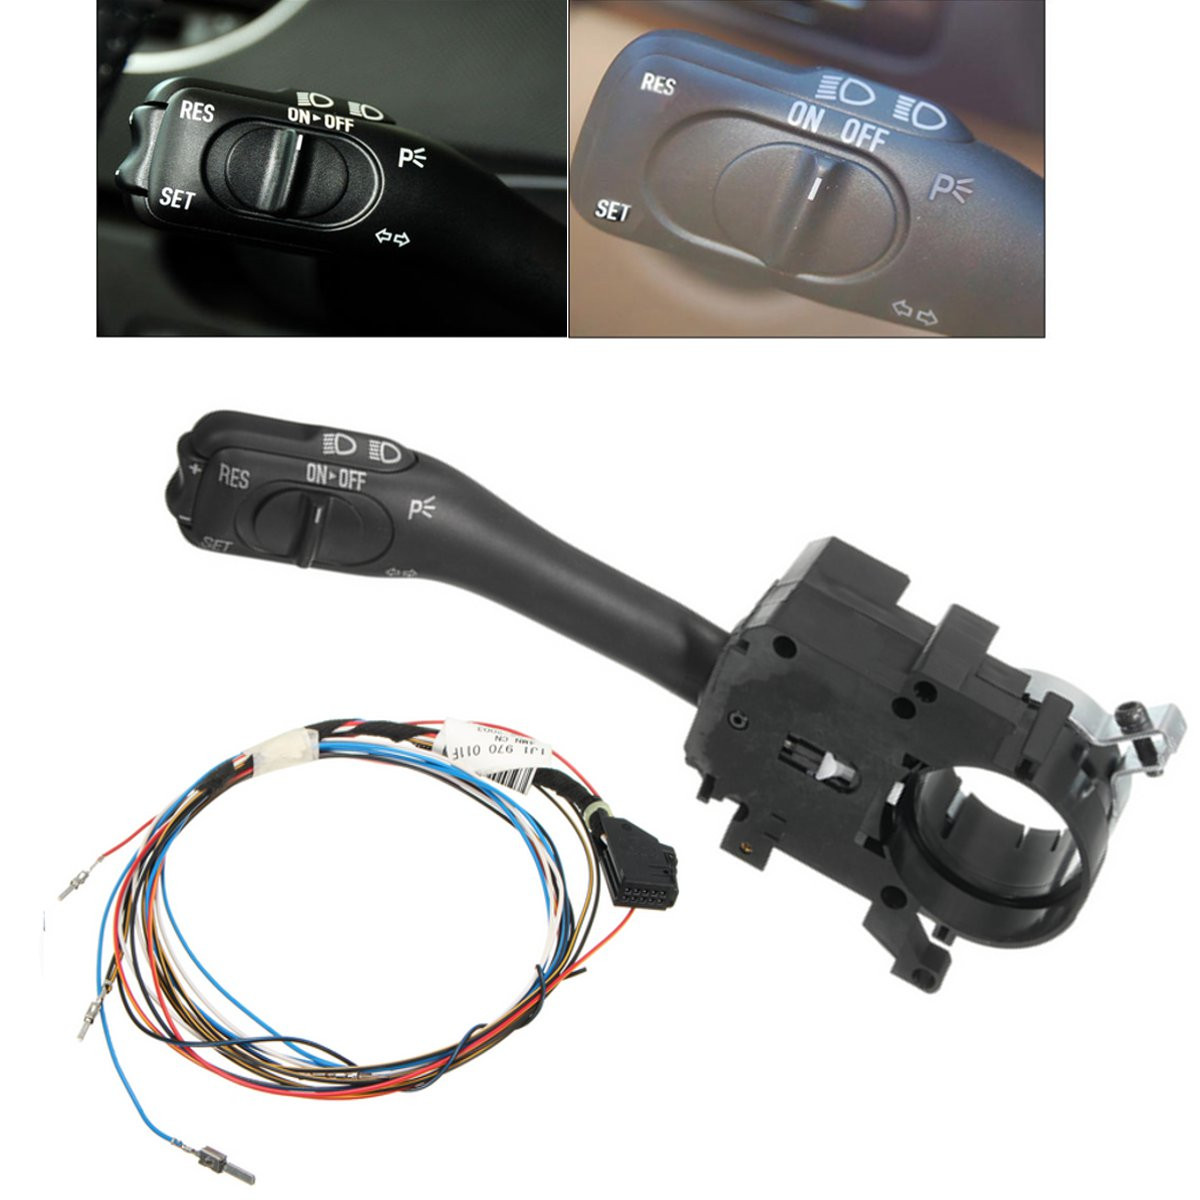 New Cruise Control System Indicator Stalk Switch & Harness Wire For VW Golf GTI Bora MK4 18G-953-513-A 1J1-970-011-F